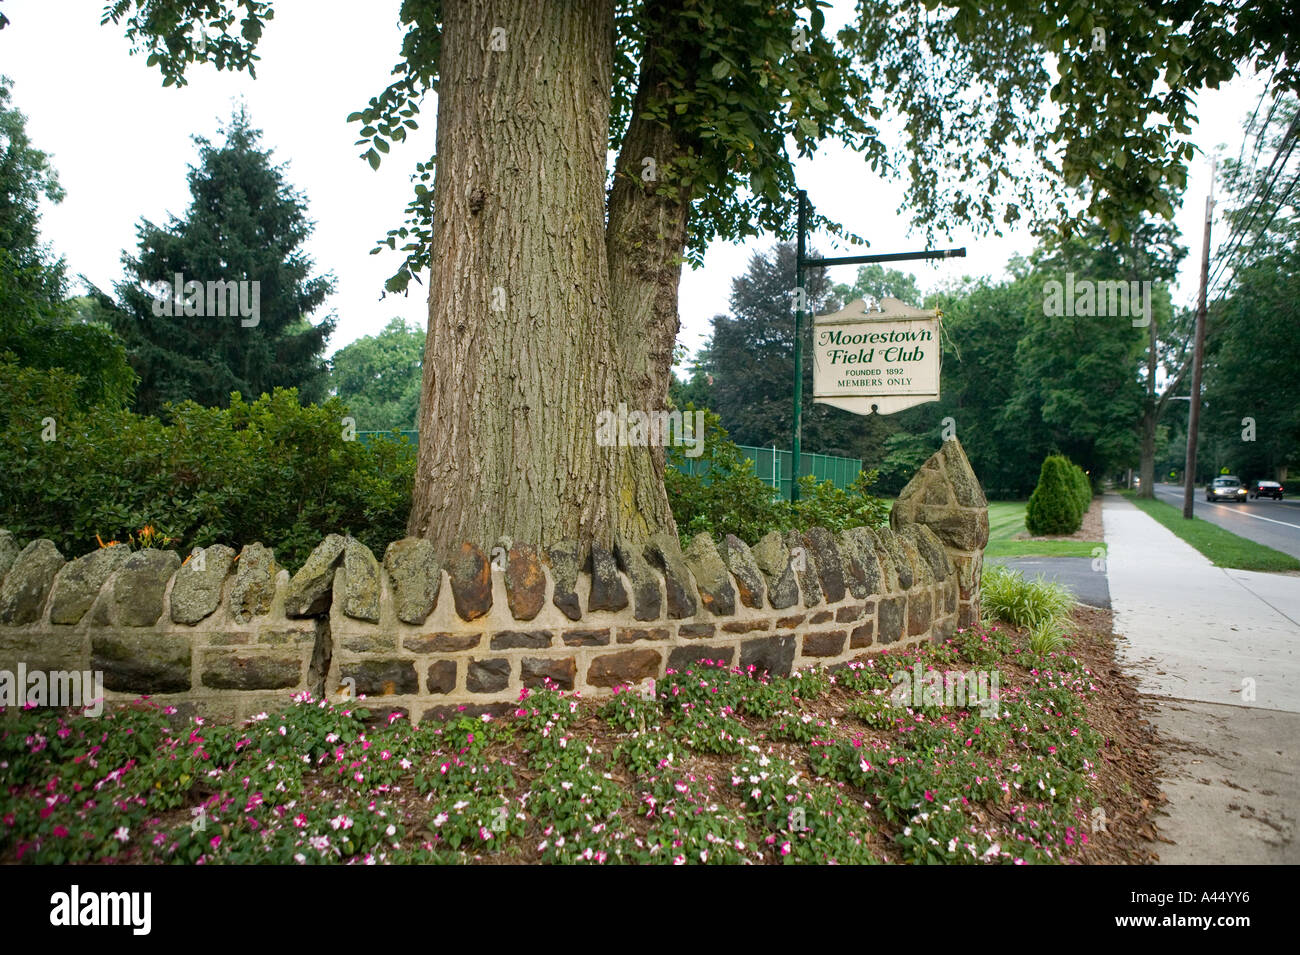 View of a sign at the entrance to the members only Moorestown Field Club in Moorestown New Jersey USA July 2005 - Stock Image